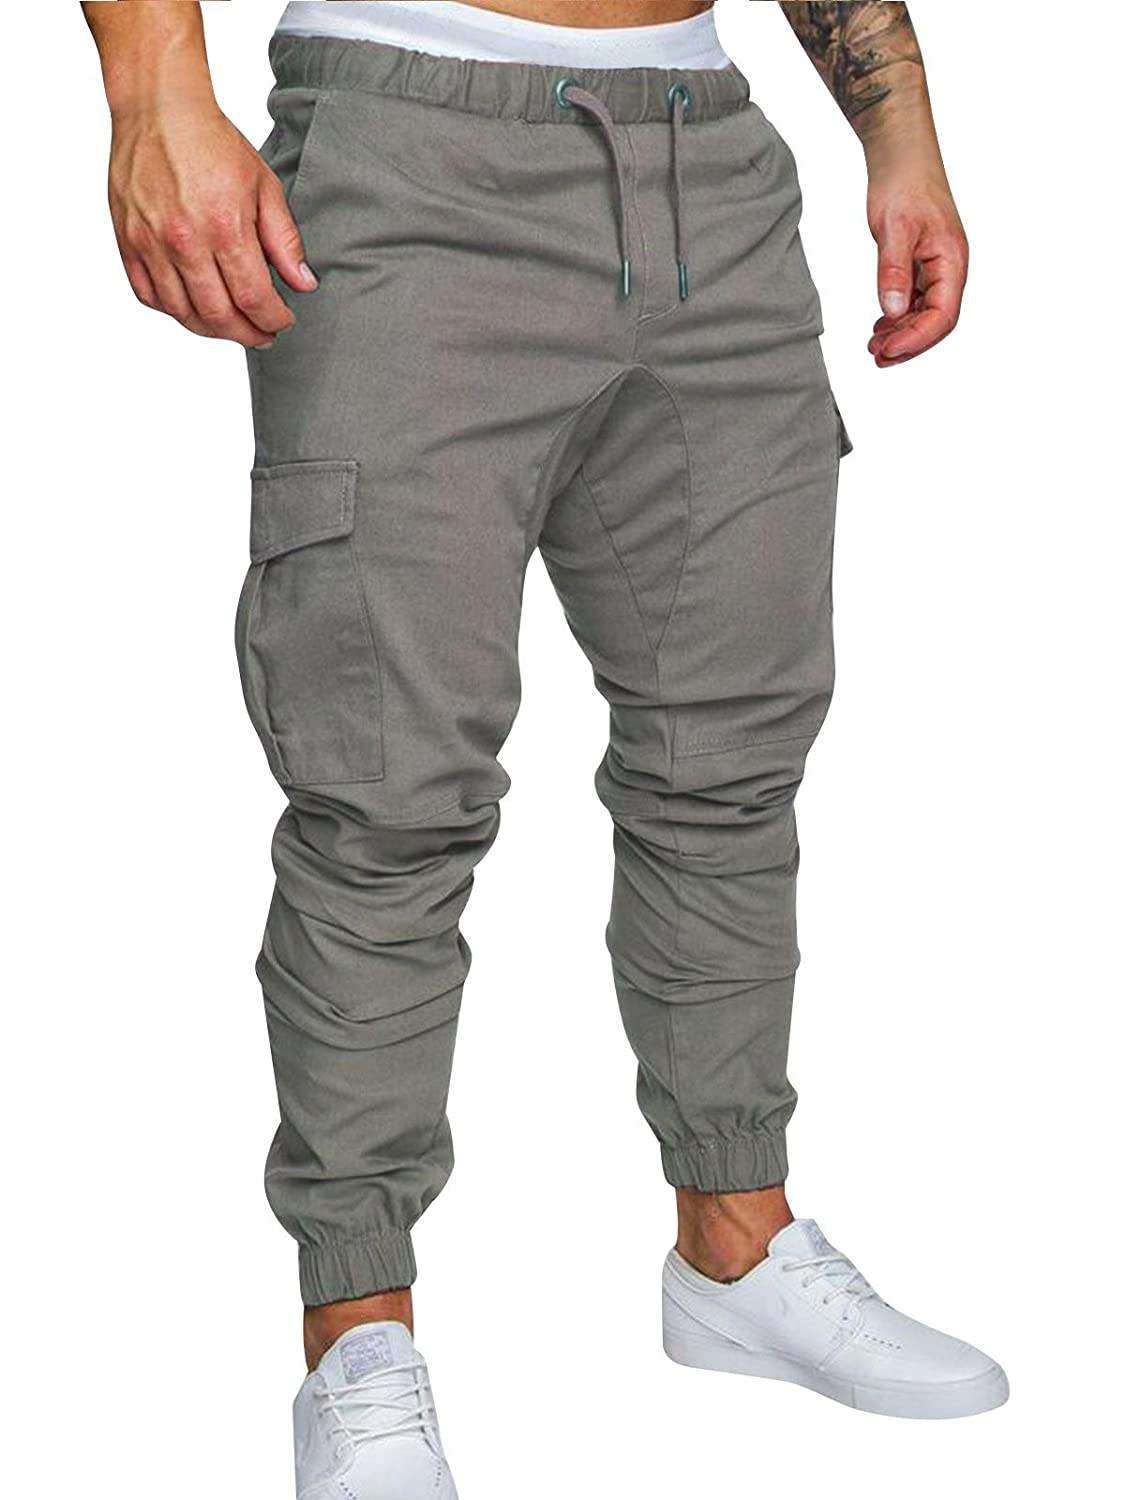 Mens Cargo Trousers Slim Fit Jeans Combat Skinny Elasticated Waist Drawstring Chinos Pants Slack Bottoms M-3XL